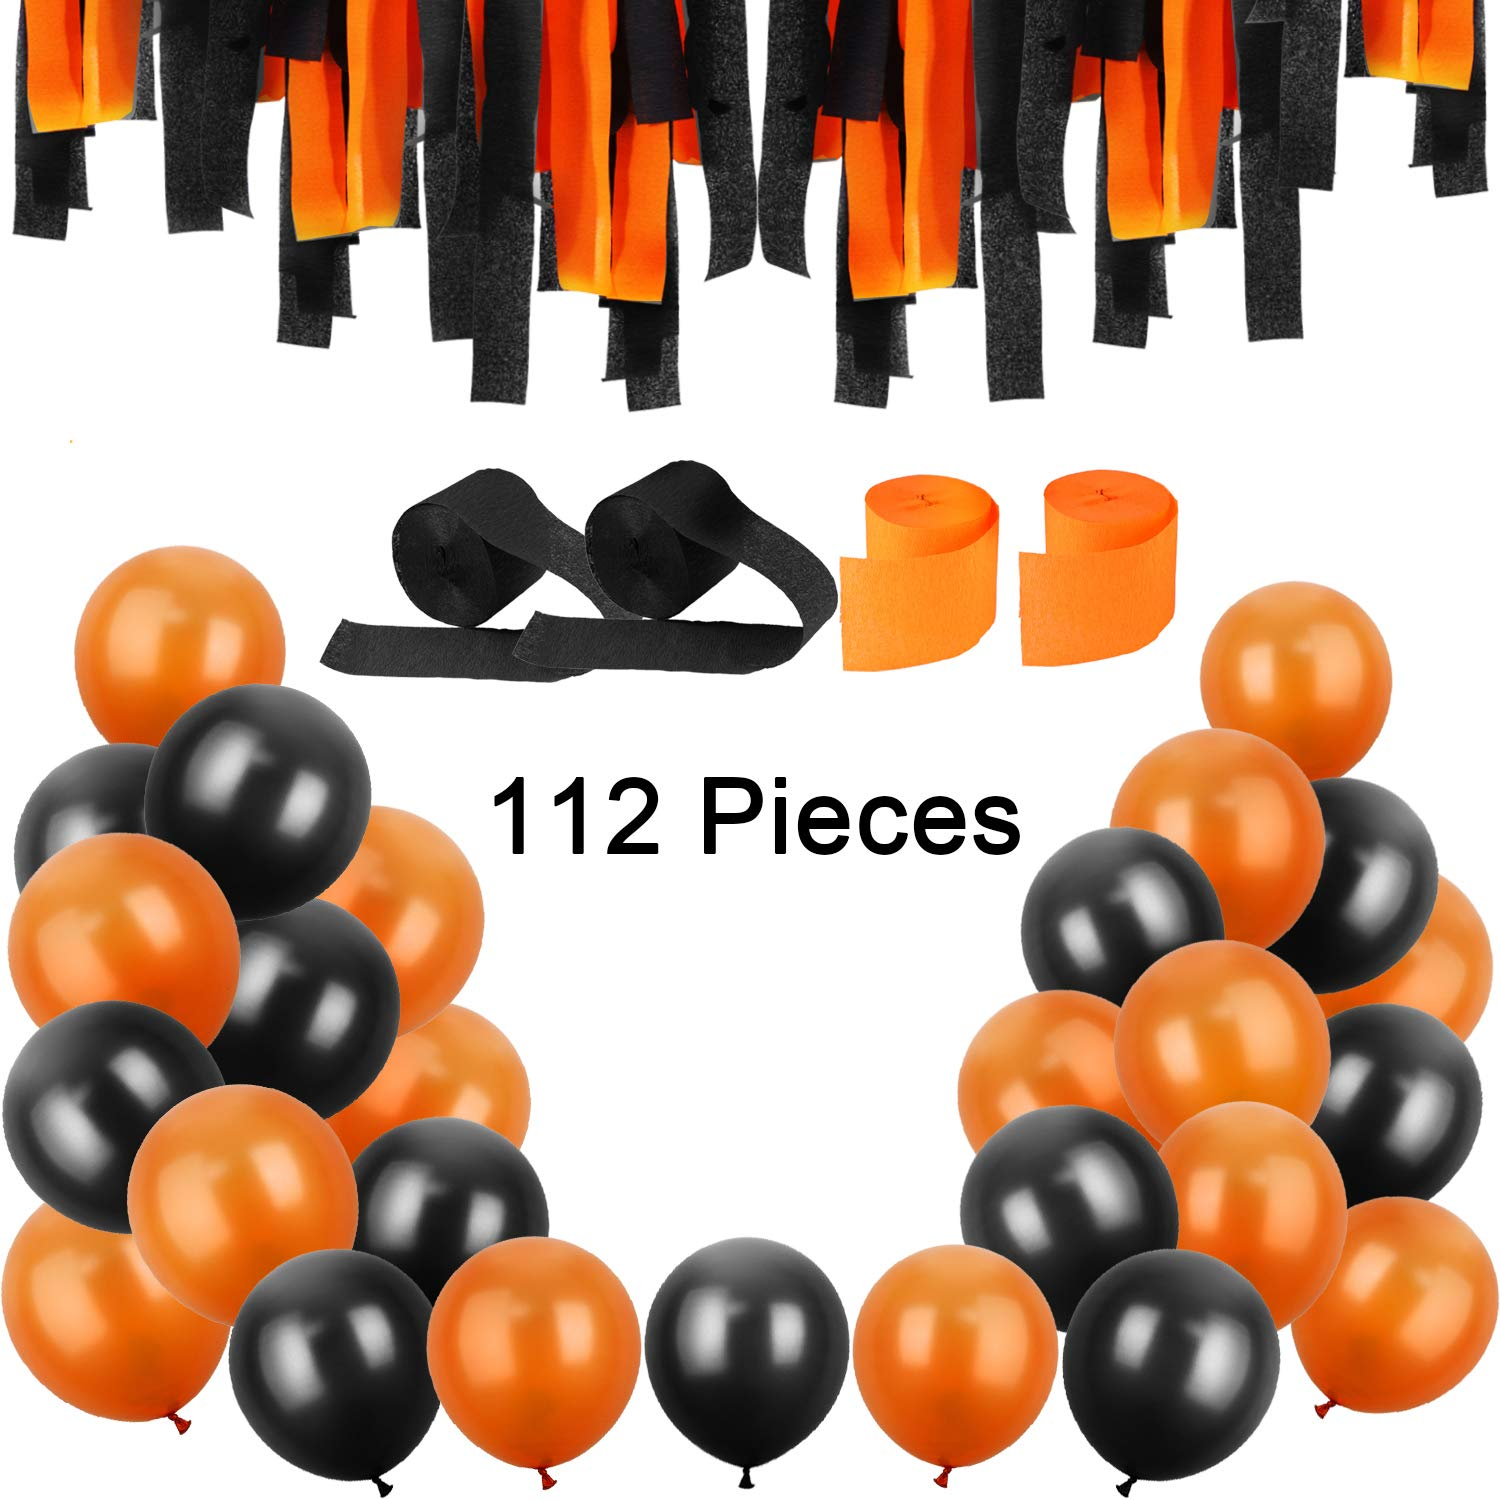 METABLE 100PCS 12 Inches Latex Balloons and Rolls Crepe Streamers for Halloween Decorations Party Supplies,Orange Black